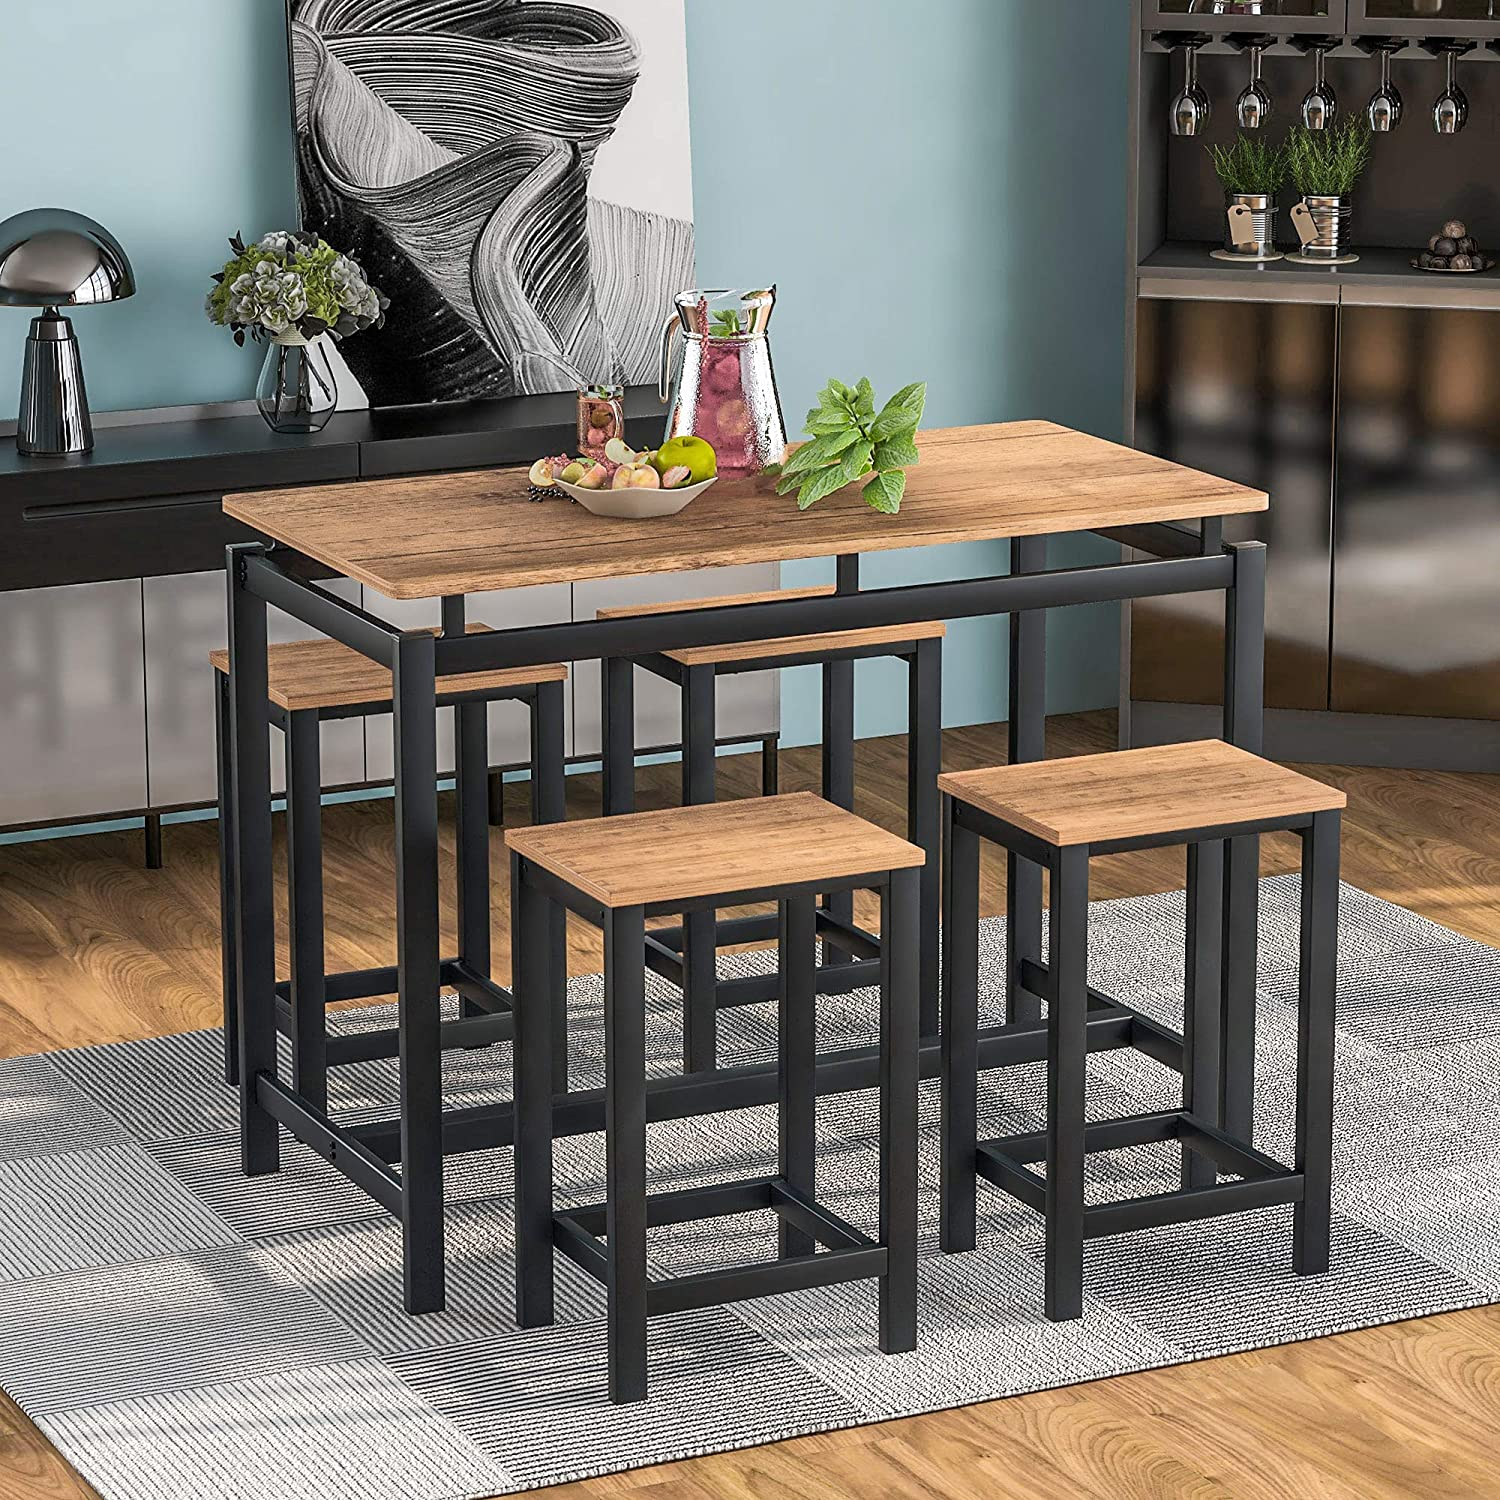 5-Piece Dining Table Safety and trust Set Home Kitchen A Low price 4 Chairs with Di